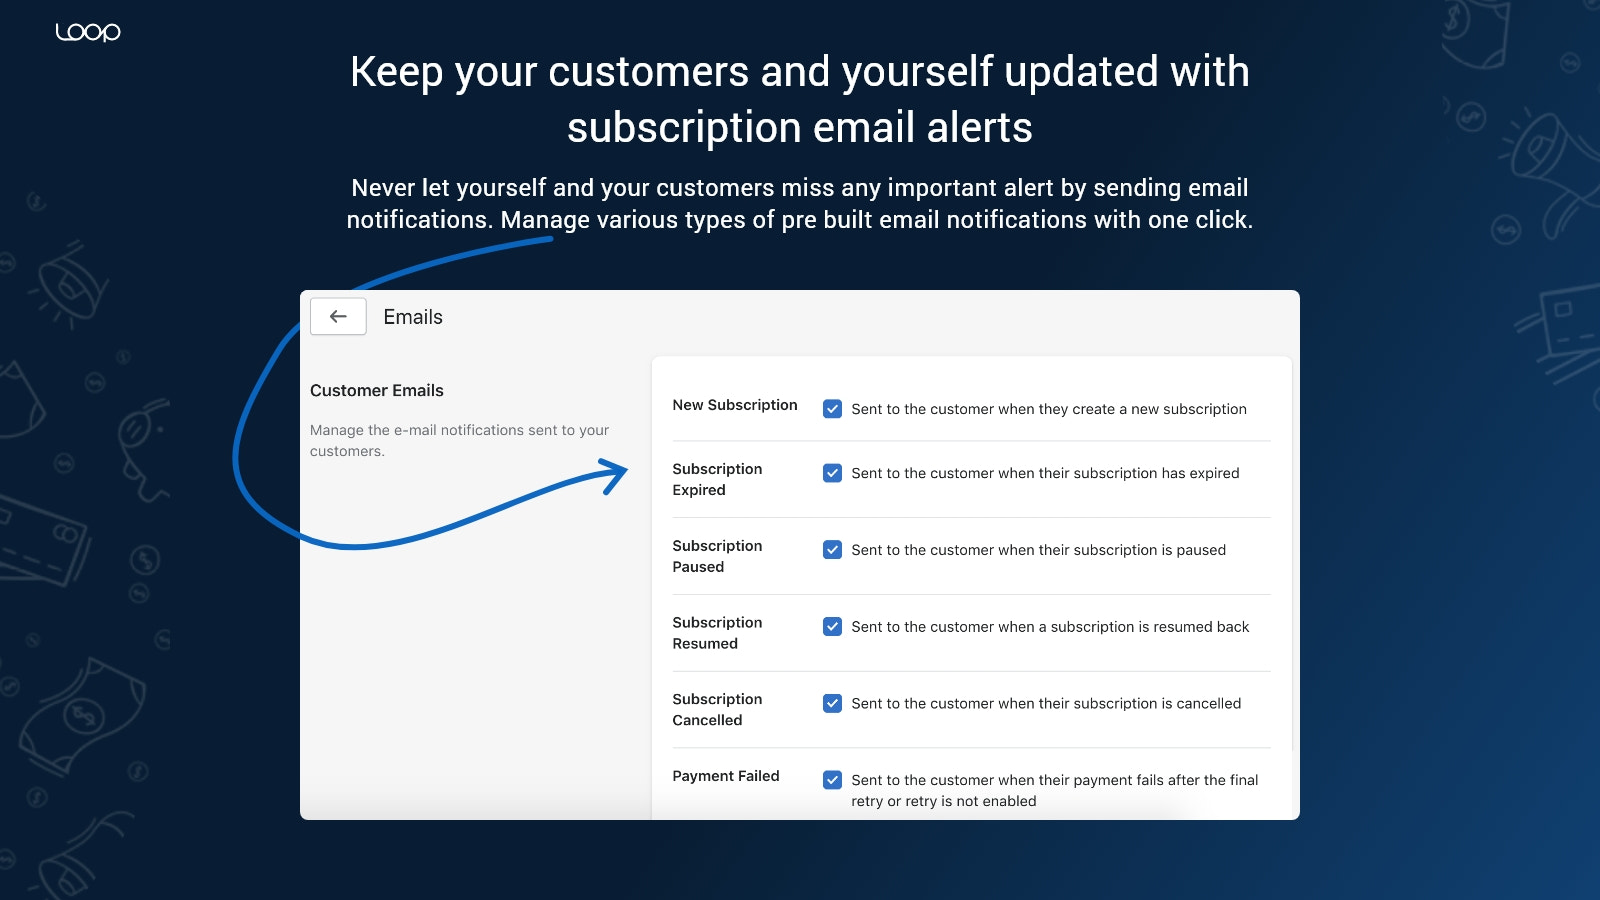 Subscription Email Alerts for creation / failed subscriptions...